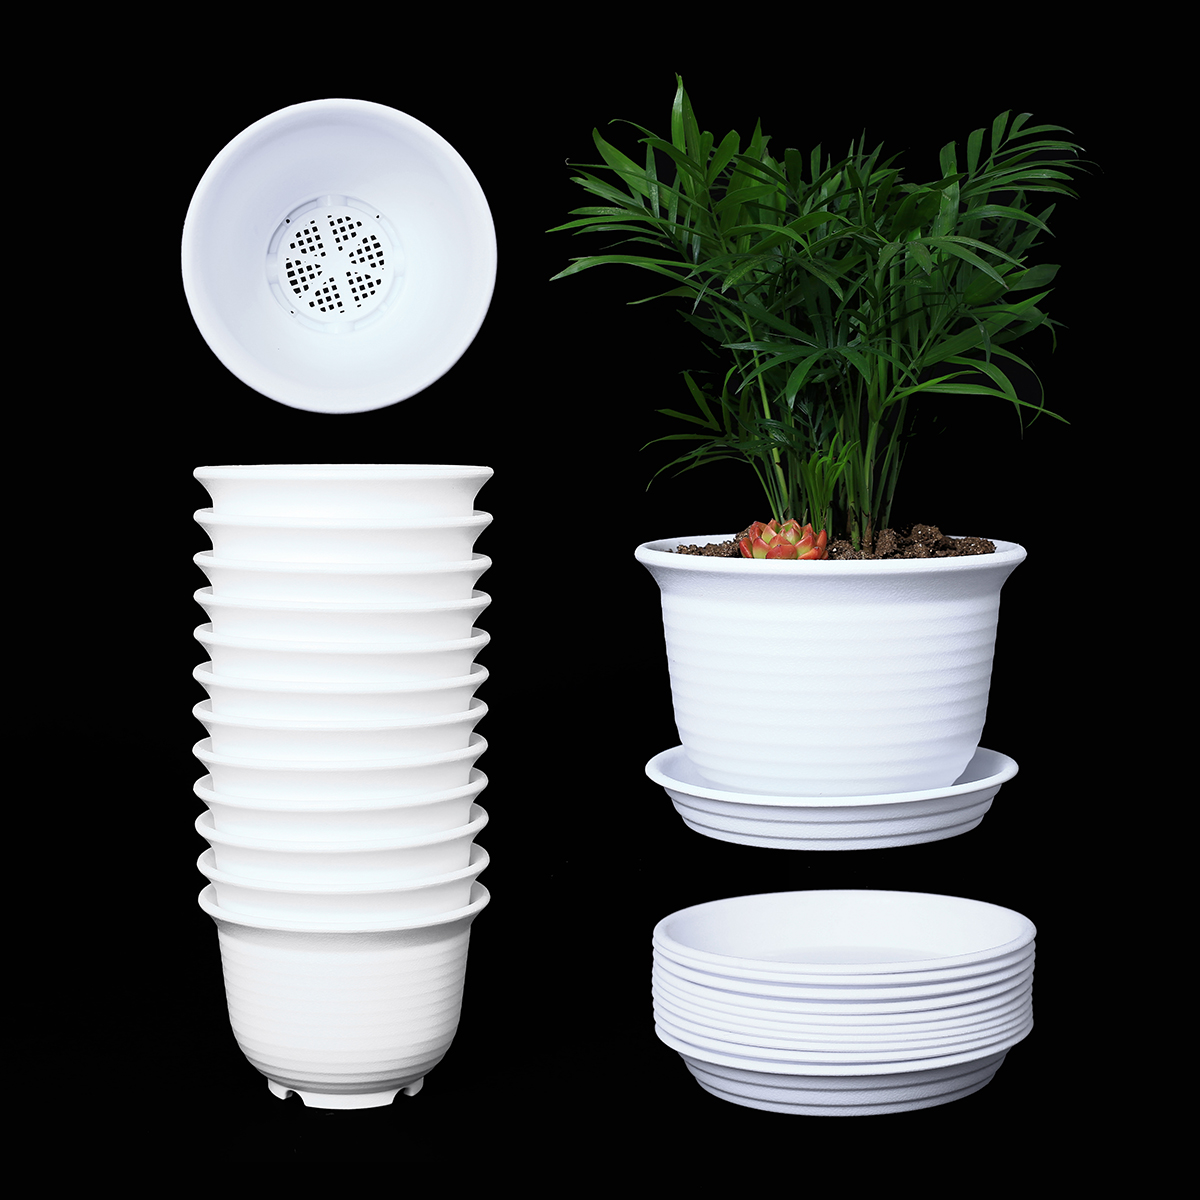 225 & 10 Pack 6 Inch Plastic Round Drainage Plant Pots Containers with Saucers Trays for Indoor and Outdoor Herbs Succulents Cactus and Flowers